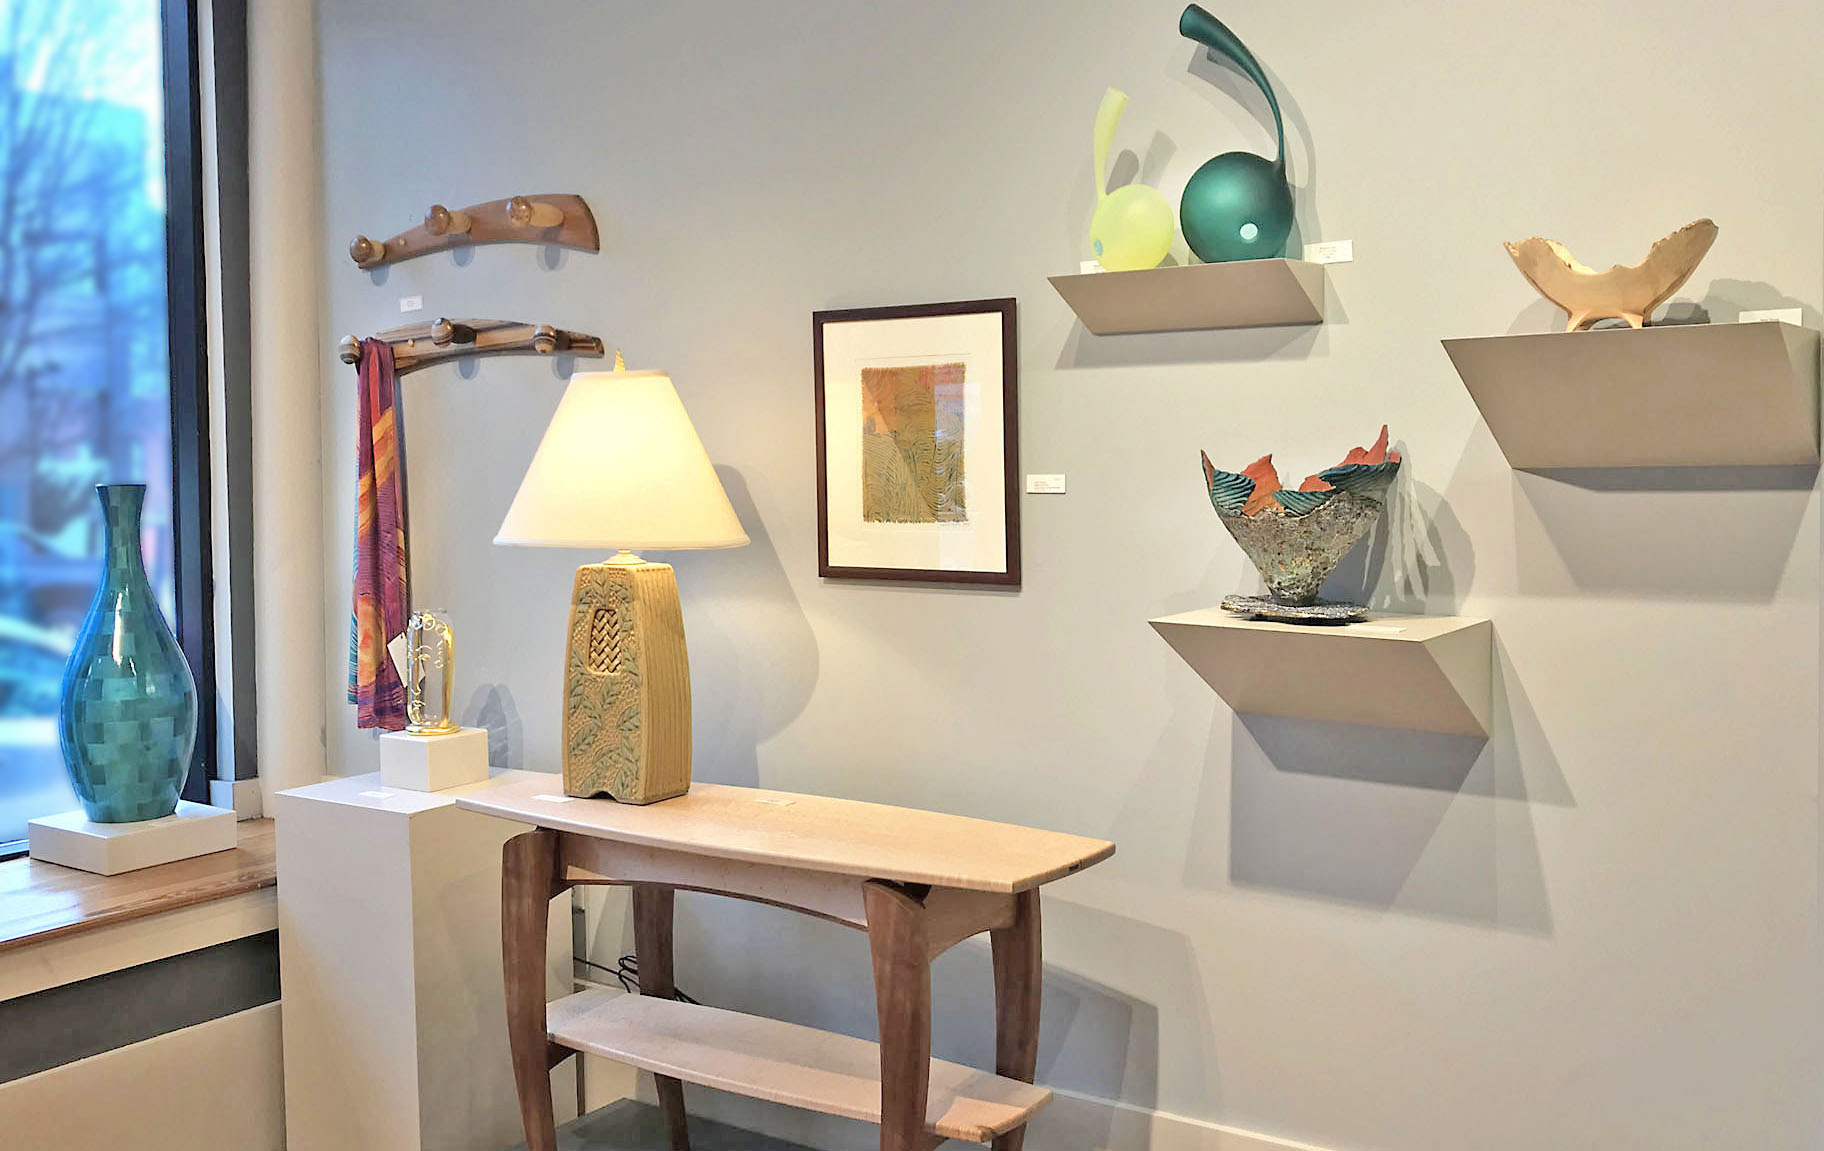 Ariel Gallery, an Asheville art gallery focusing on fine craft